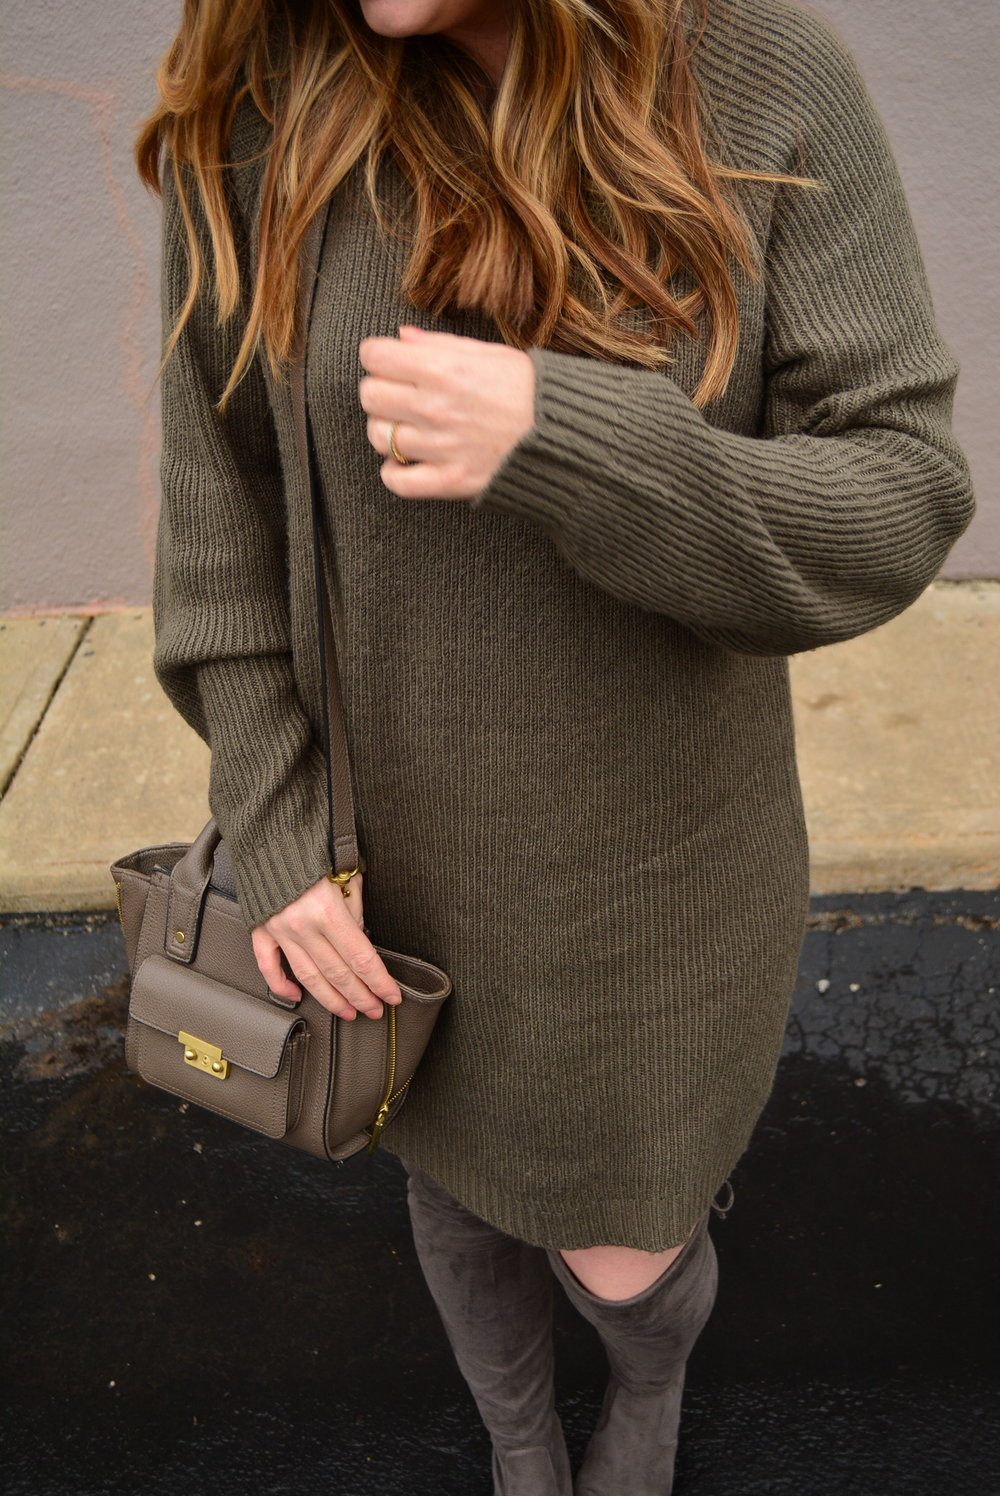 Casual sweater dress outfit